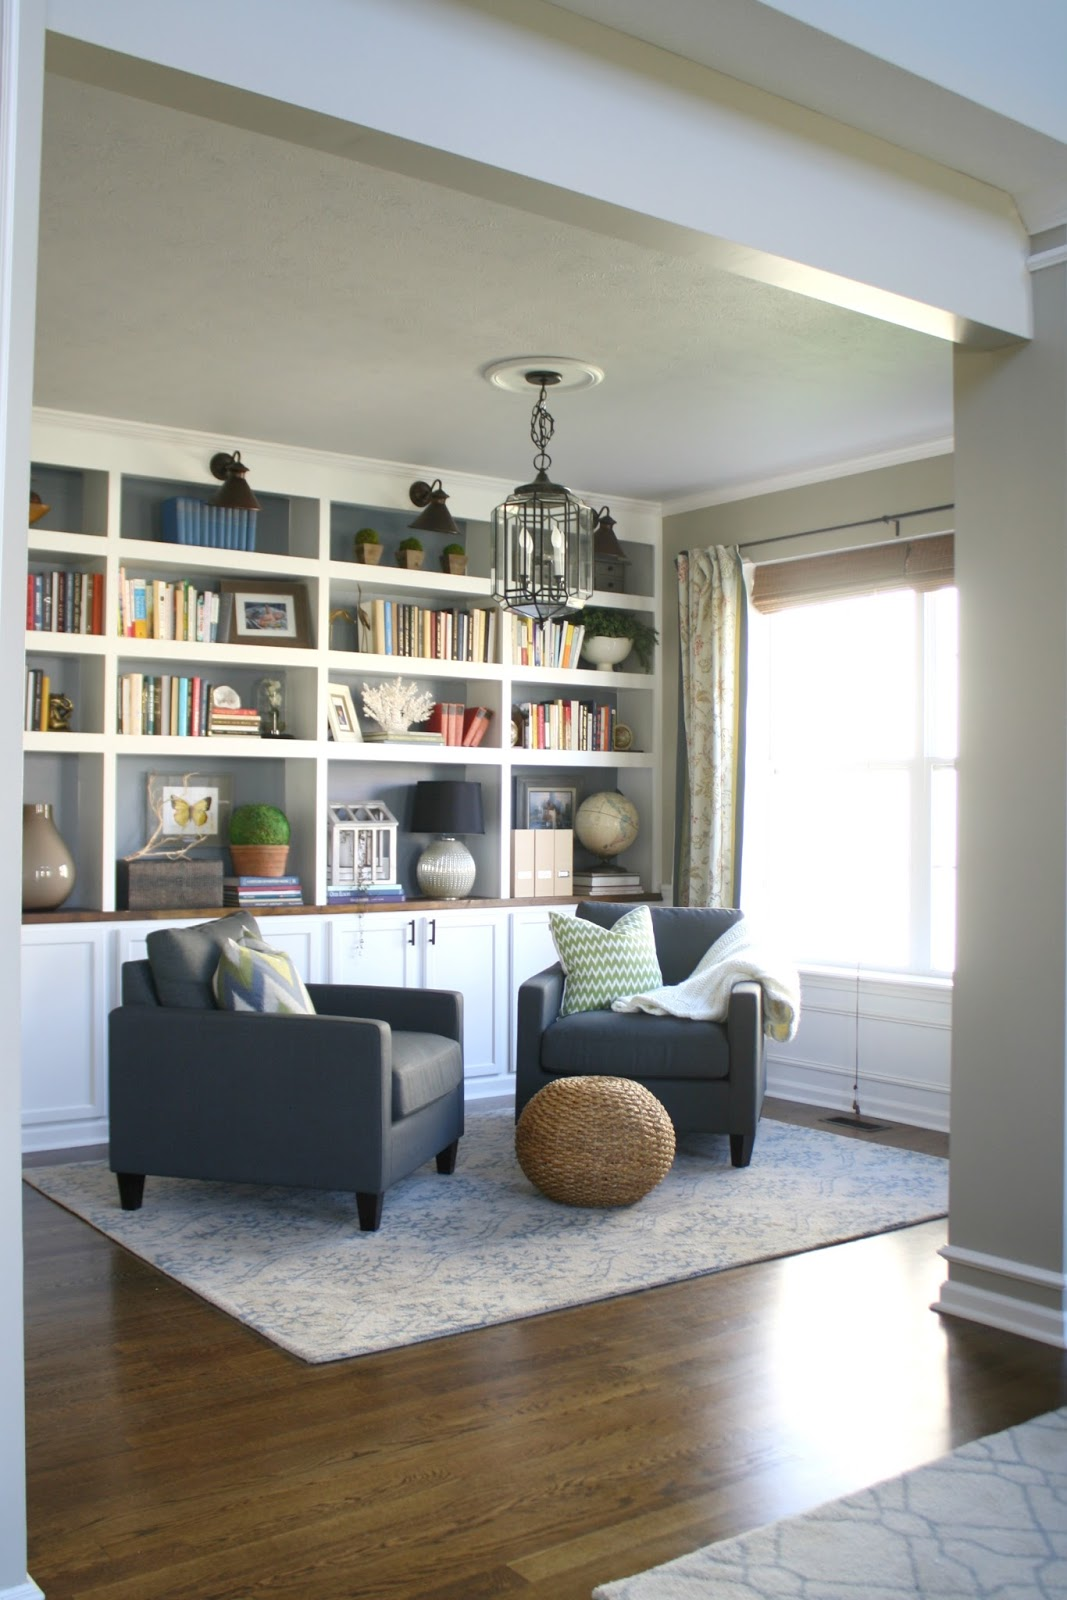 Seating Ideas For A Small Living Room: The Library Is Complete! (for Real This Time) From Thrifty